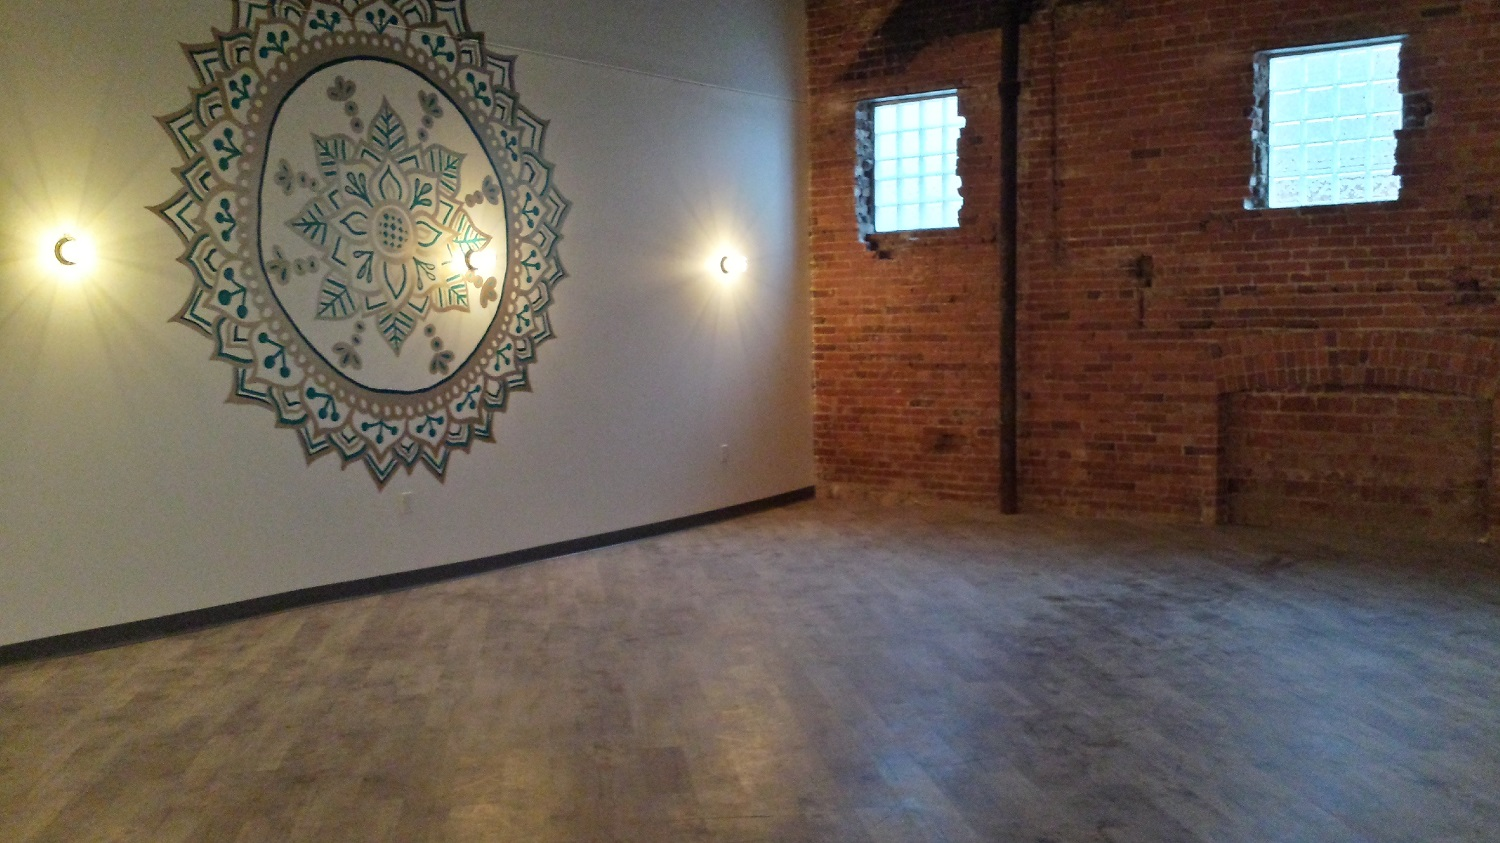 Yoga Room Completed!